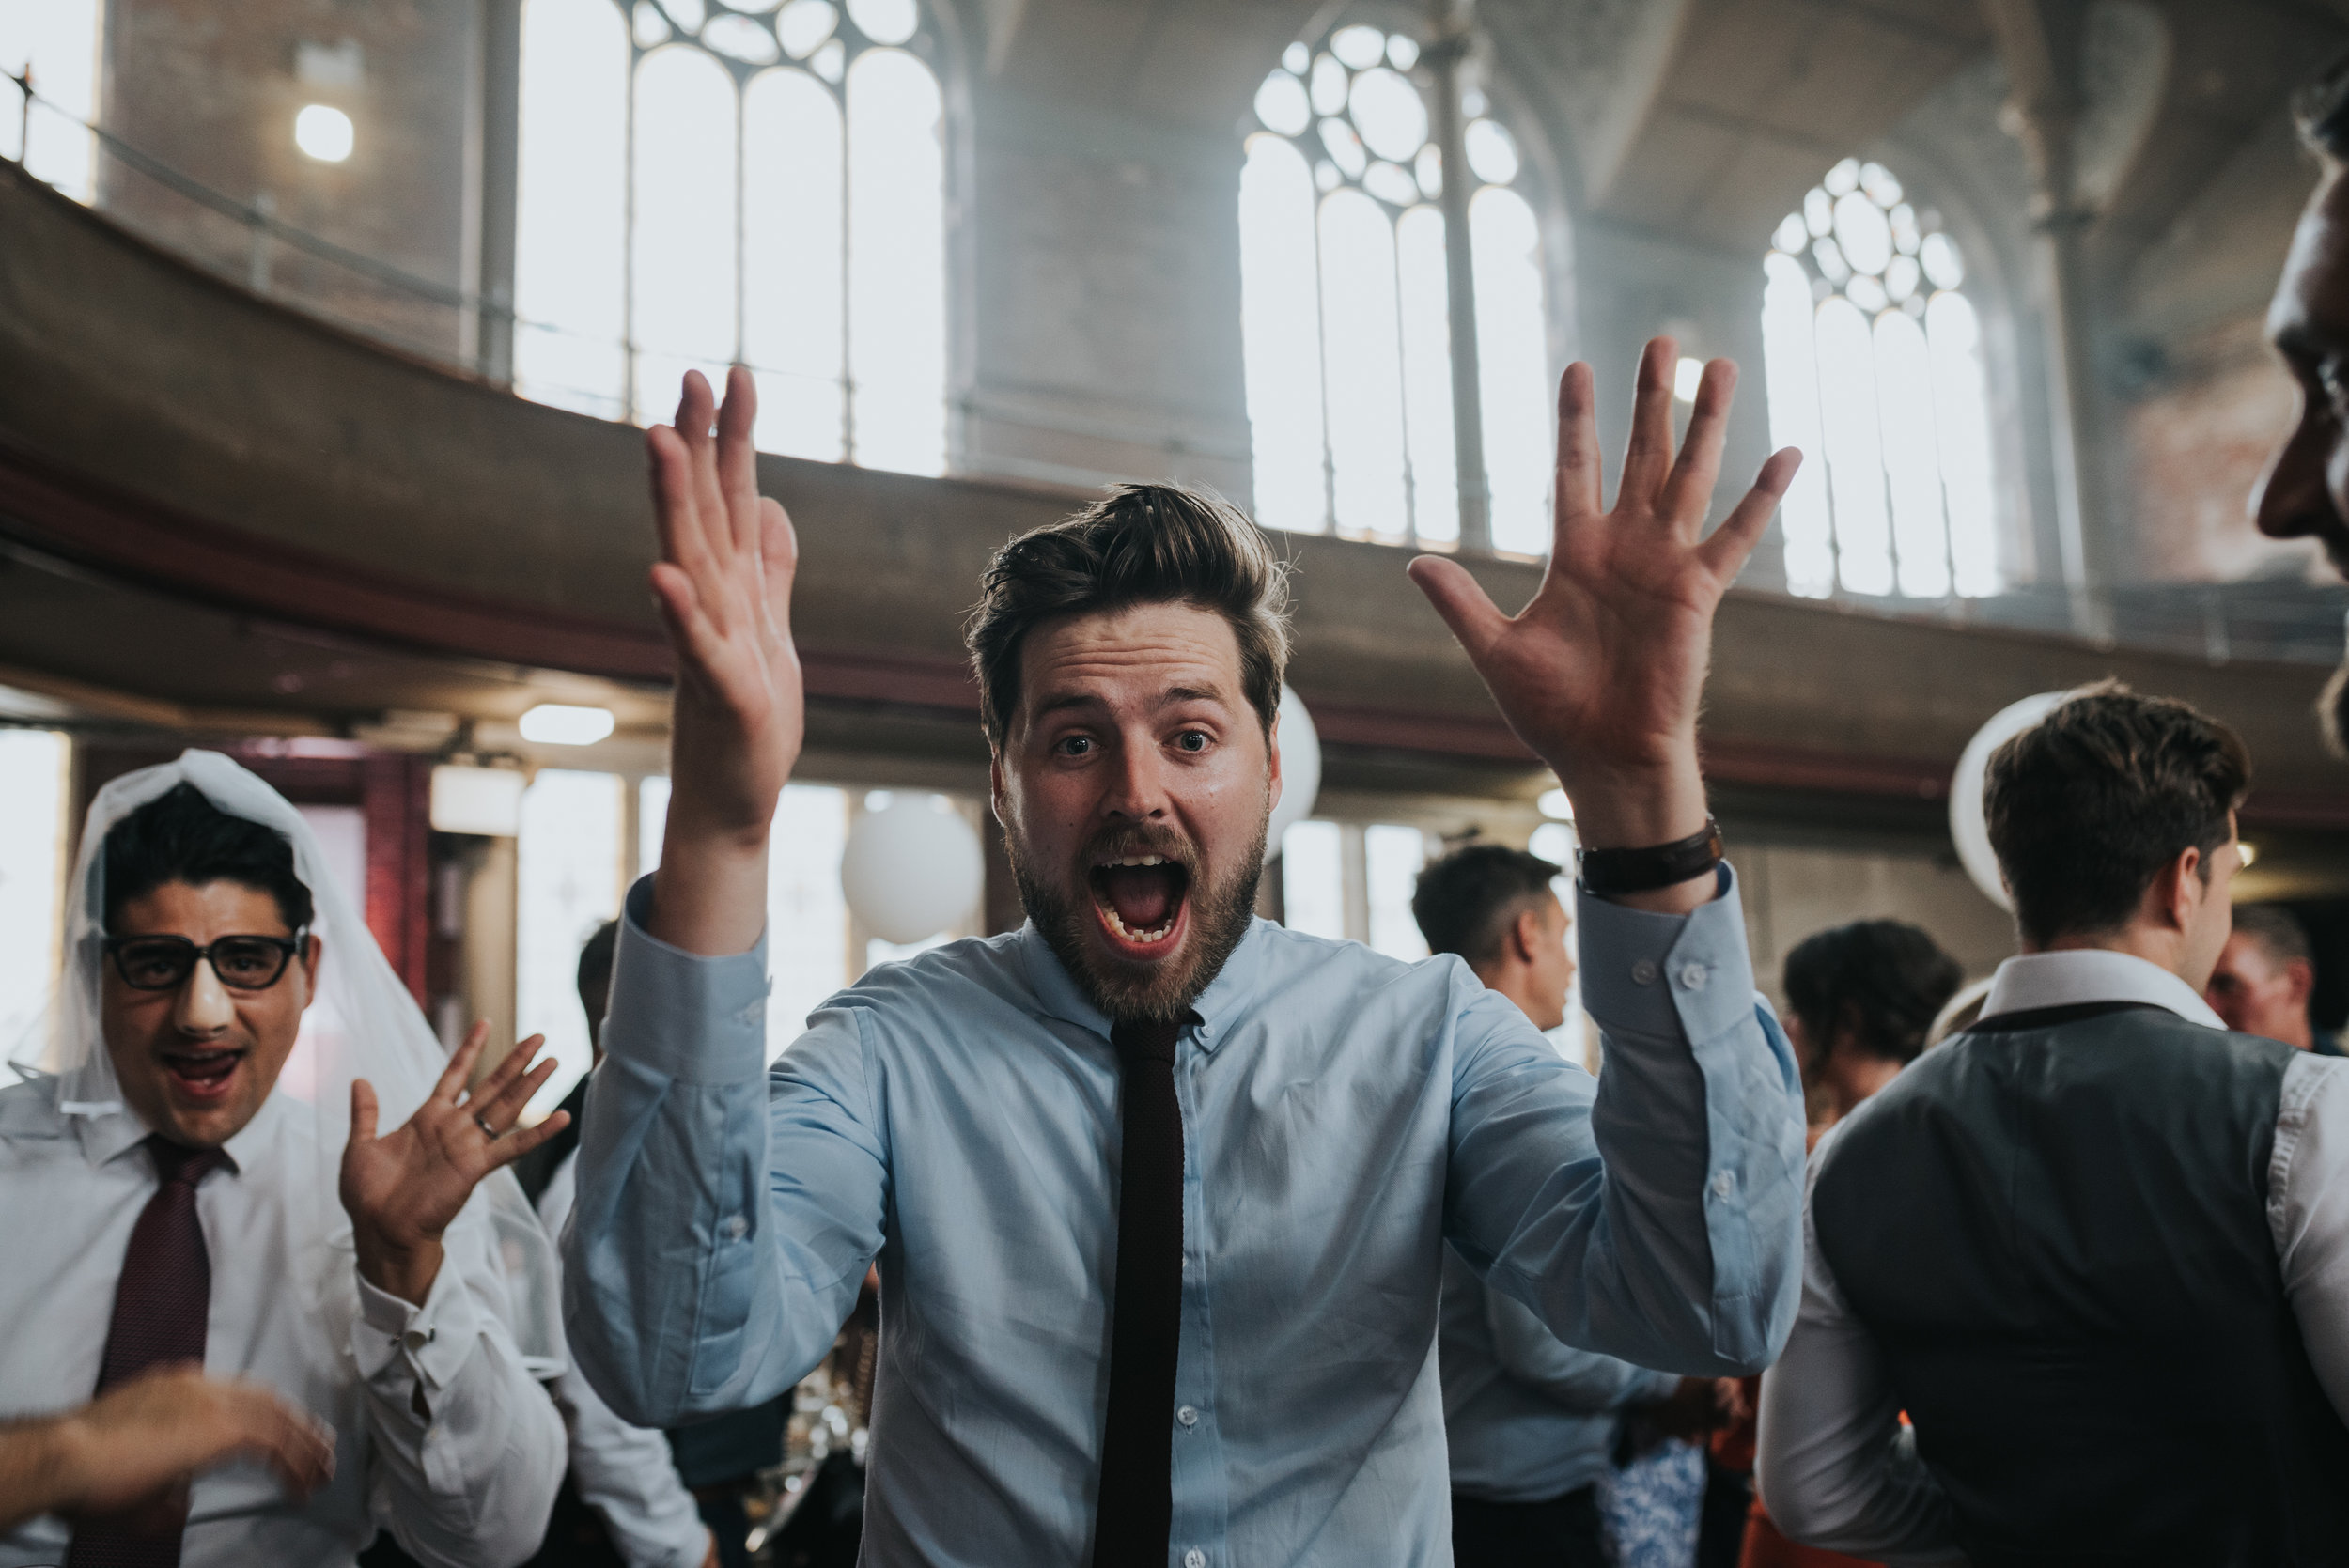 Wedding guest with shocked face and hands in the air.